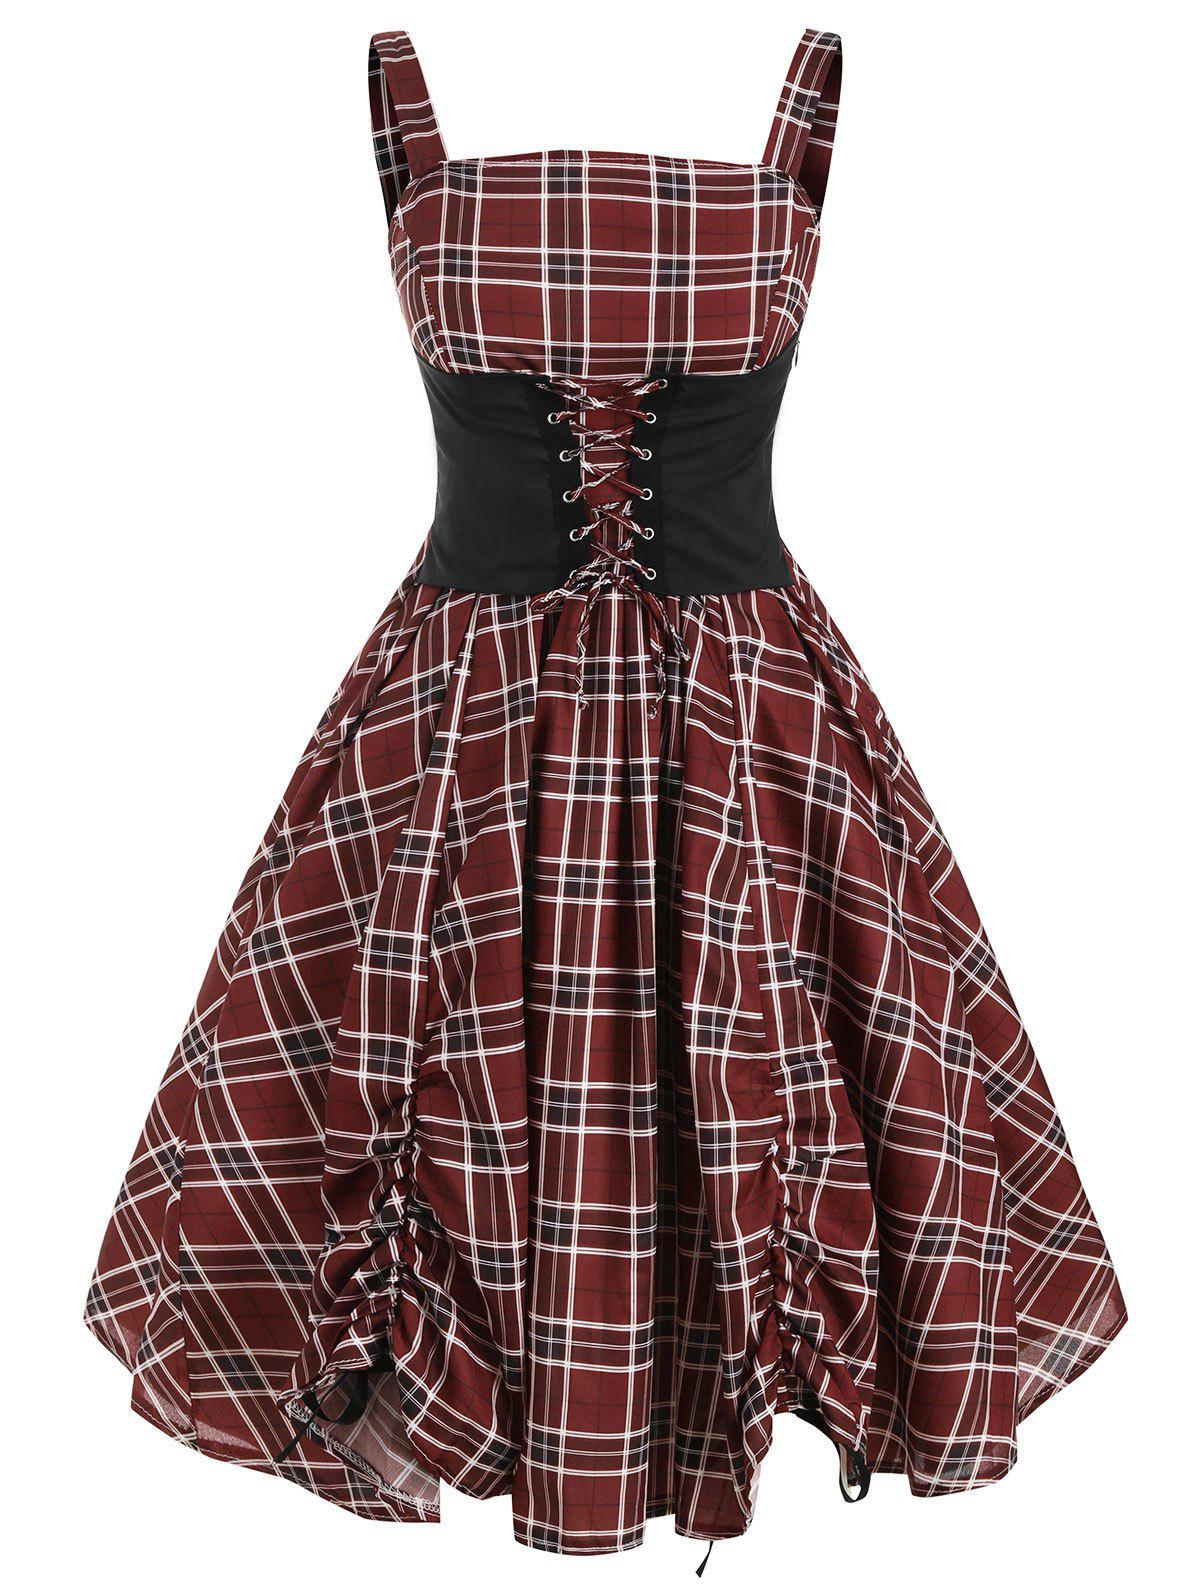 Lace Up Plaid Ruched Sleeveless Rockabilly Style A Line Dress - RED WINE M